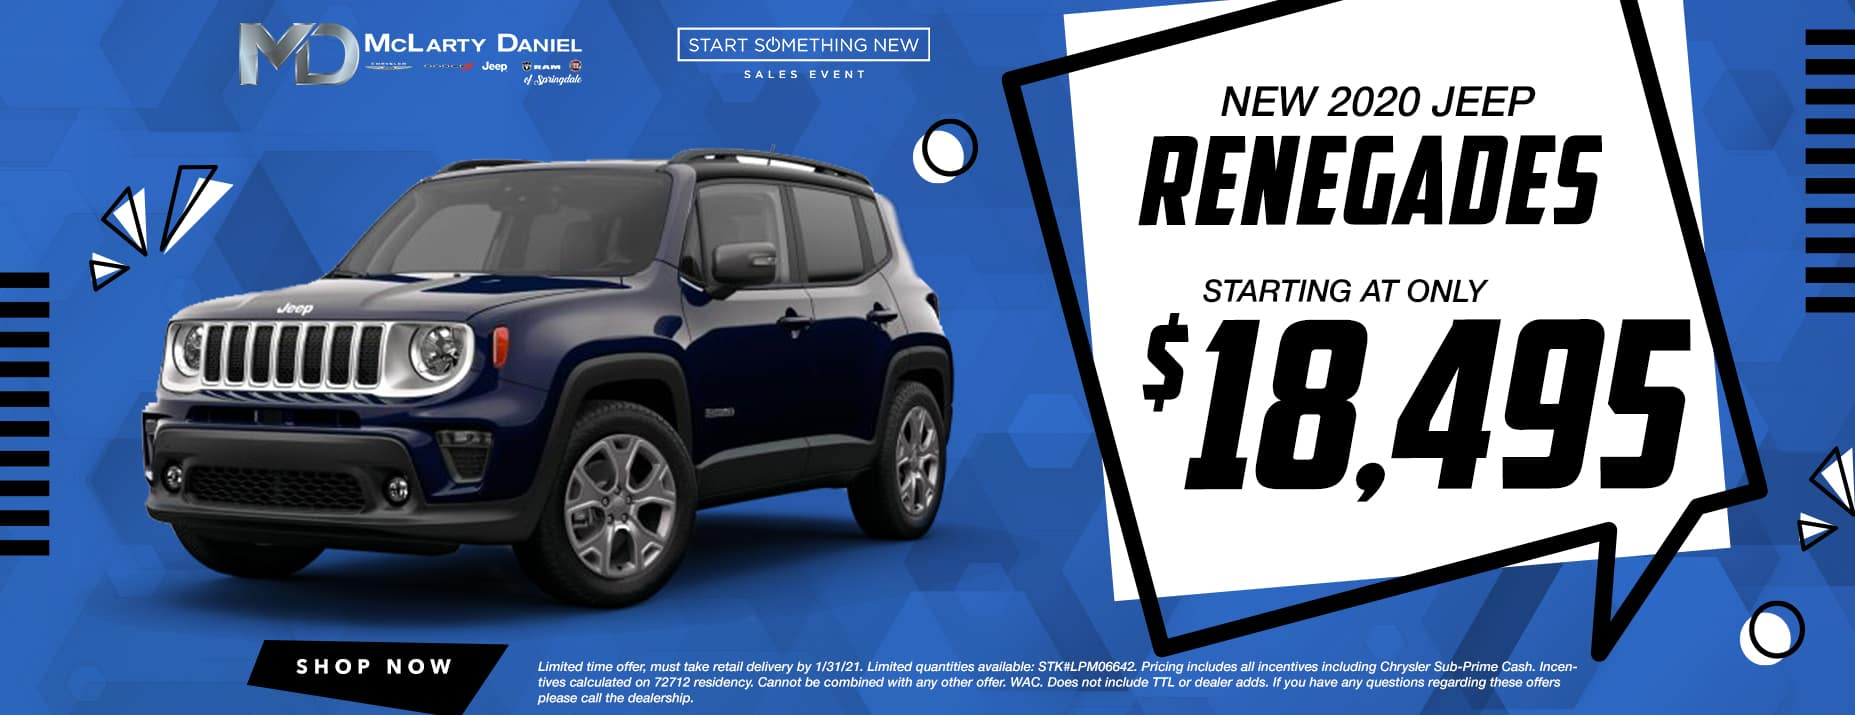 NEW 2020 RENEGADES STARTING AT ONLY $18,495!